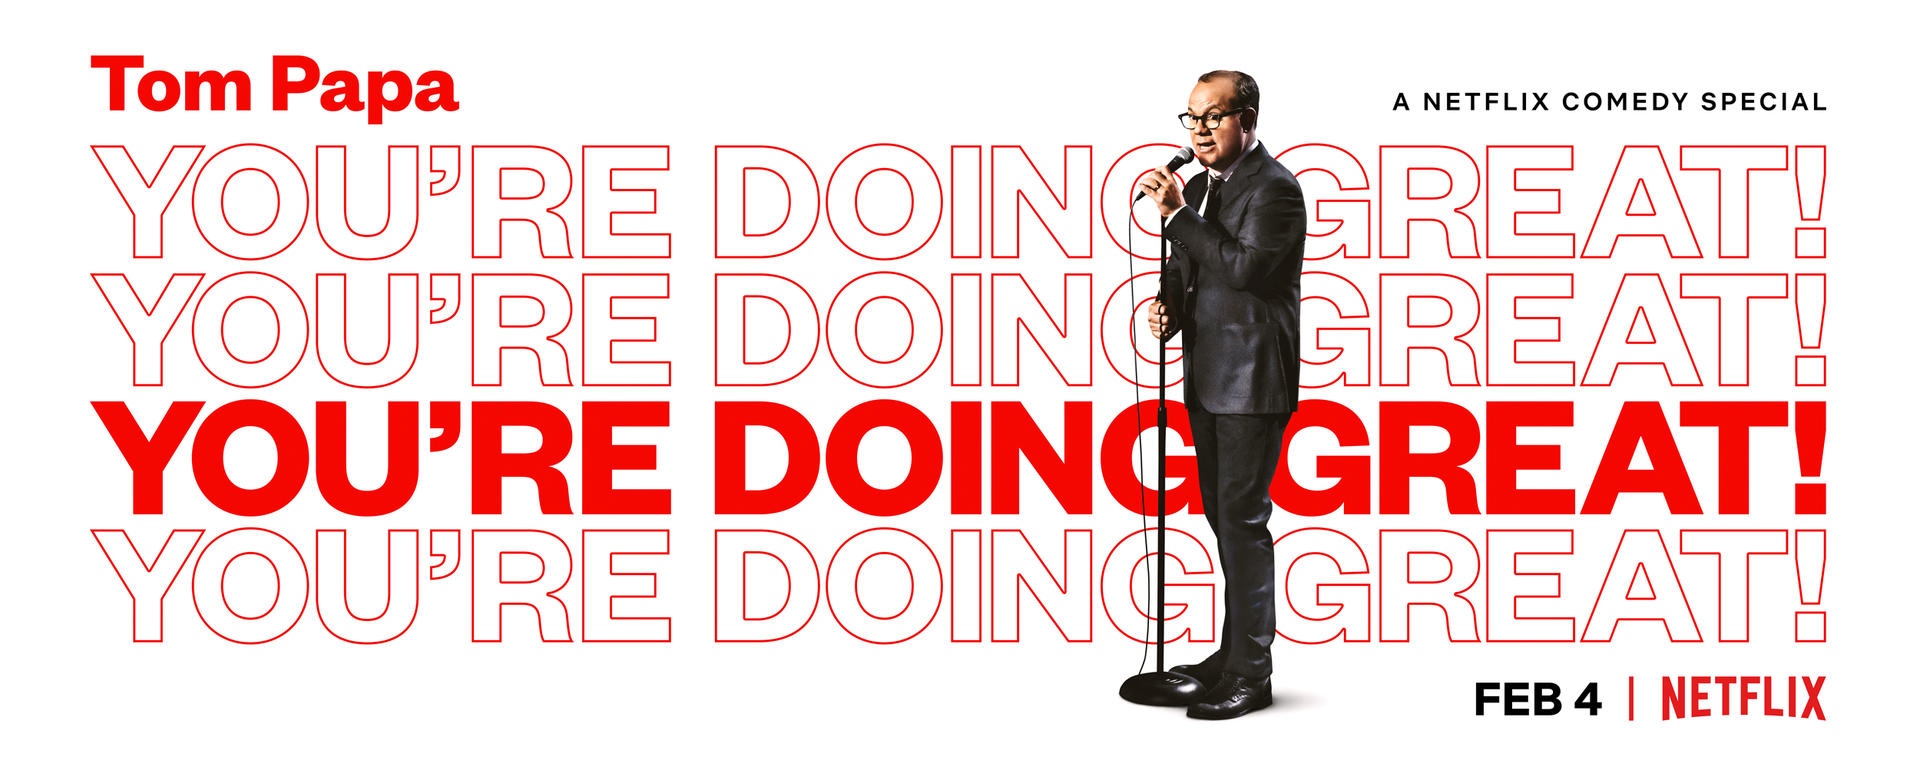 You're Doing Great comedy special by Tom Papa on Netflix